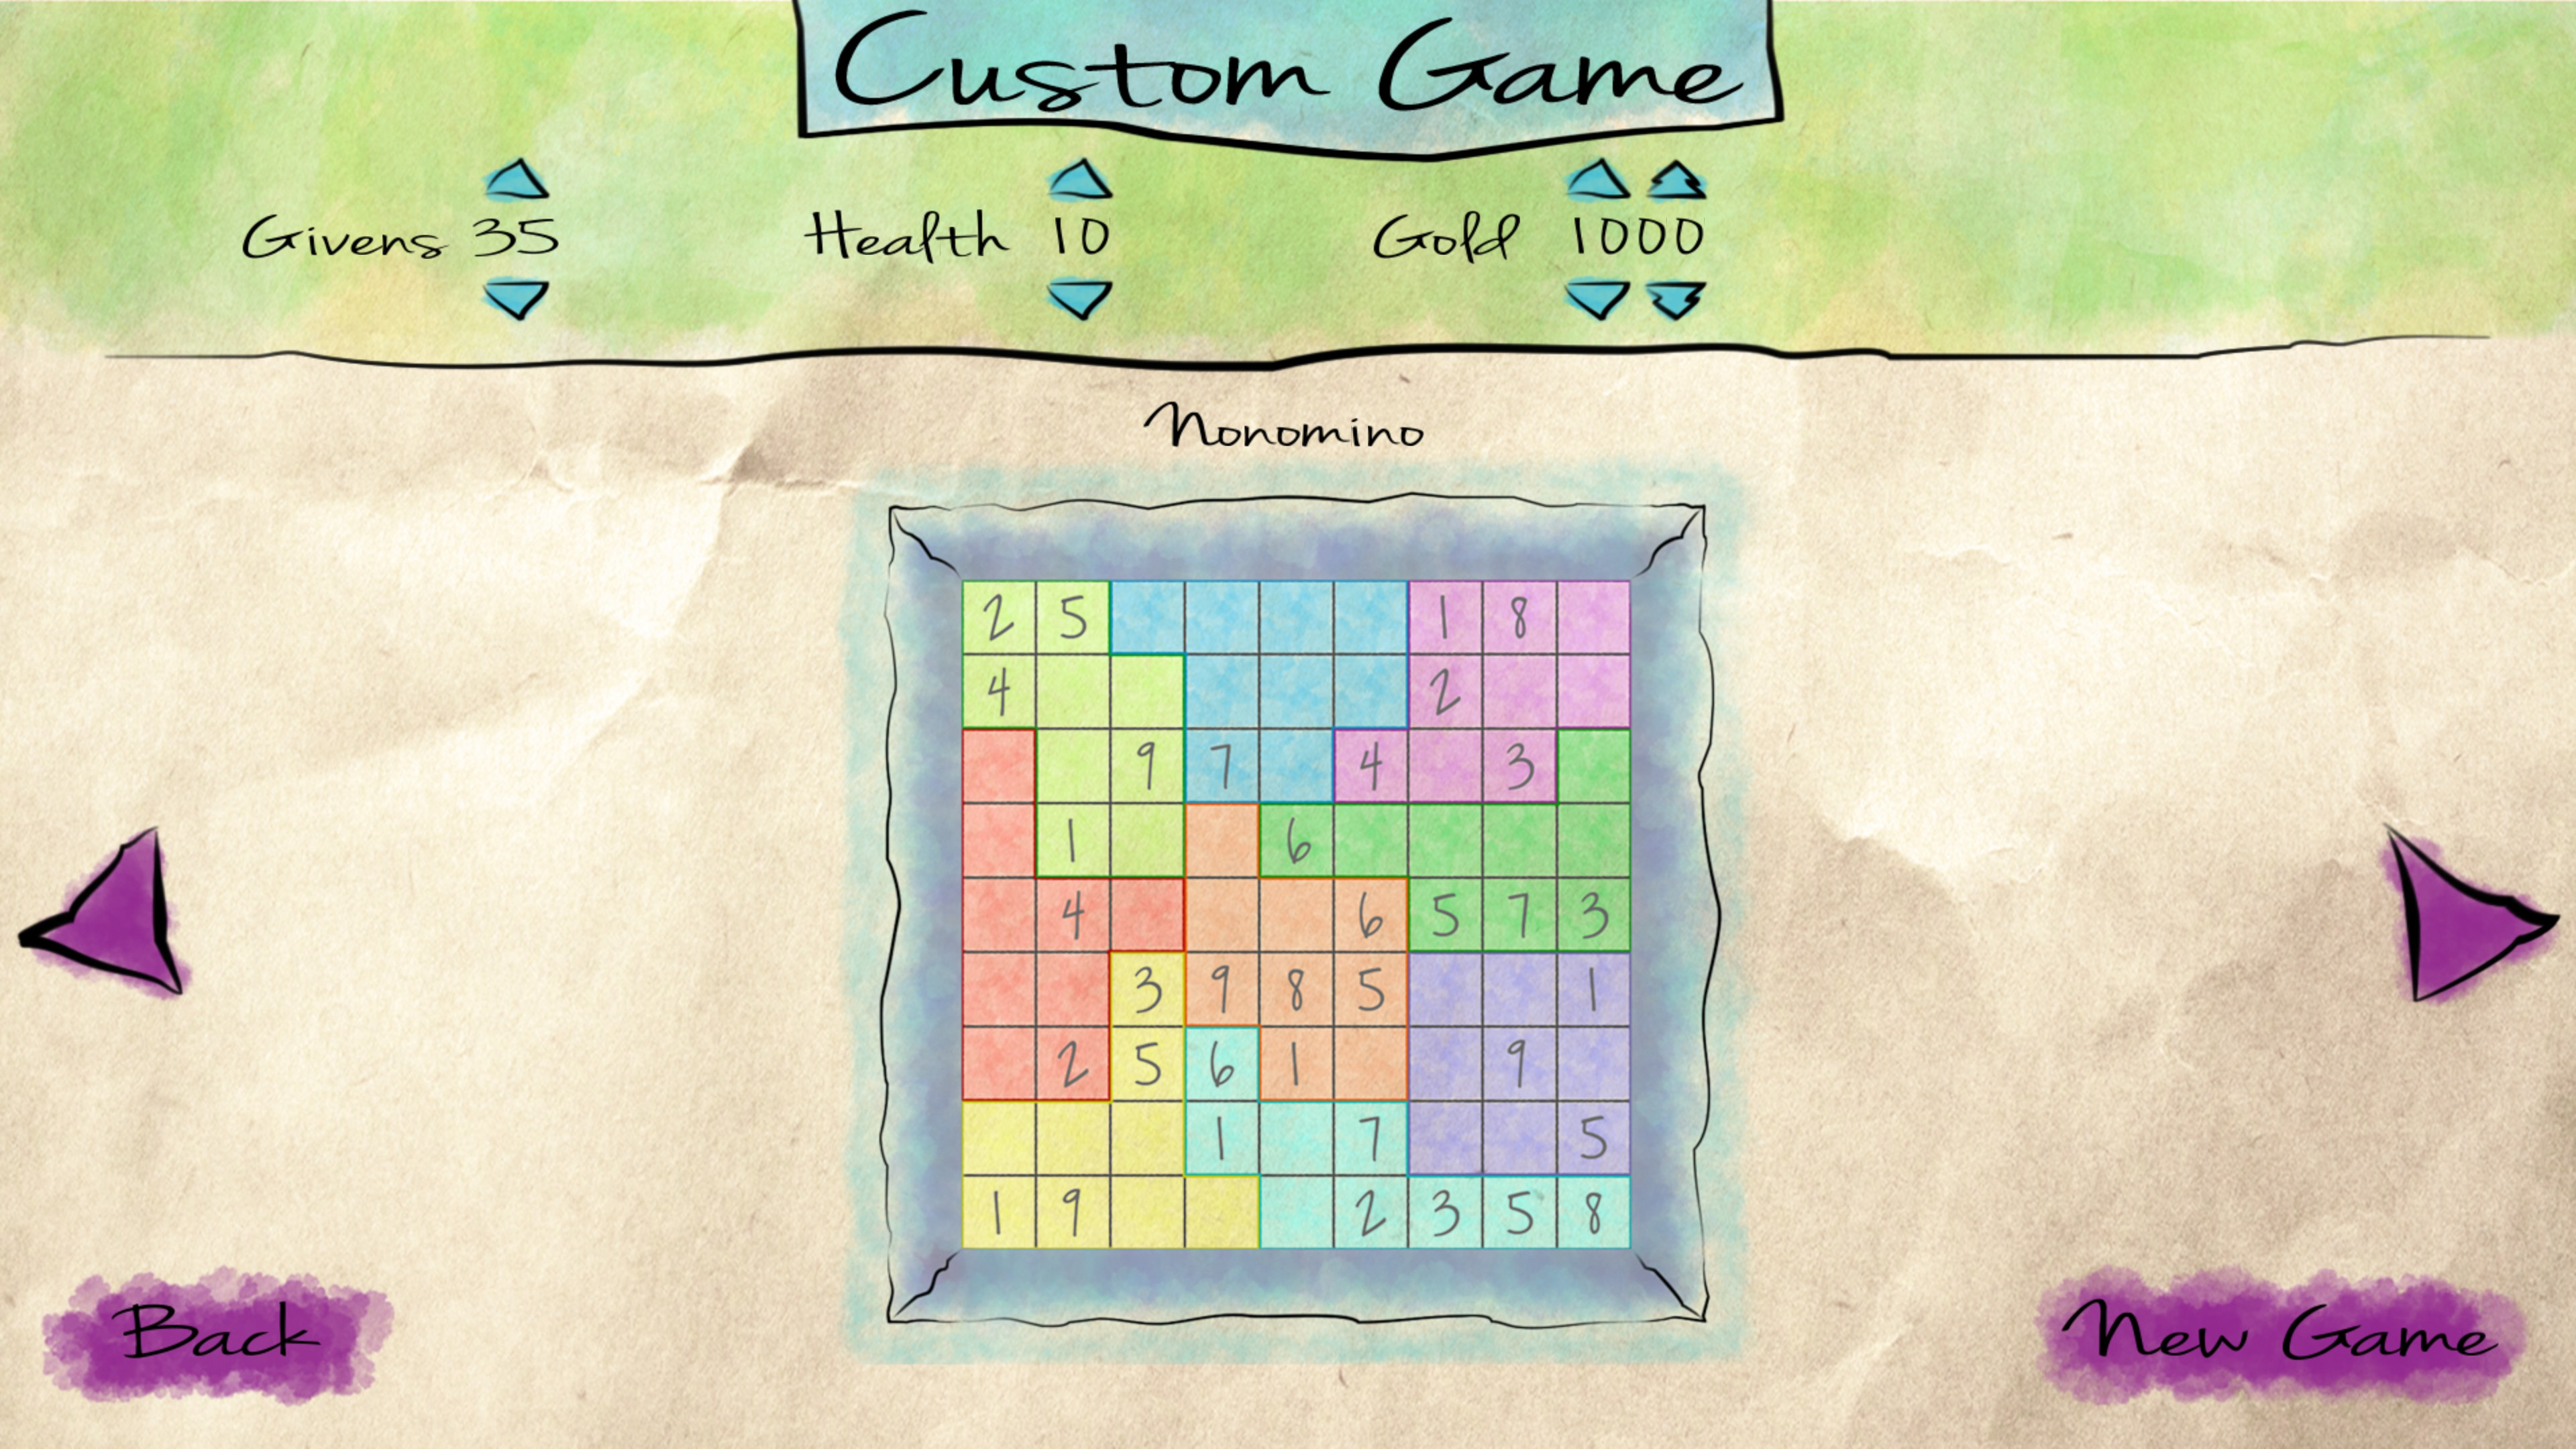 Custom game generation settings, including hearts for mistakes, givens for difficulty, and gold for power-ups.